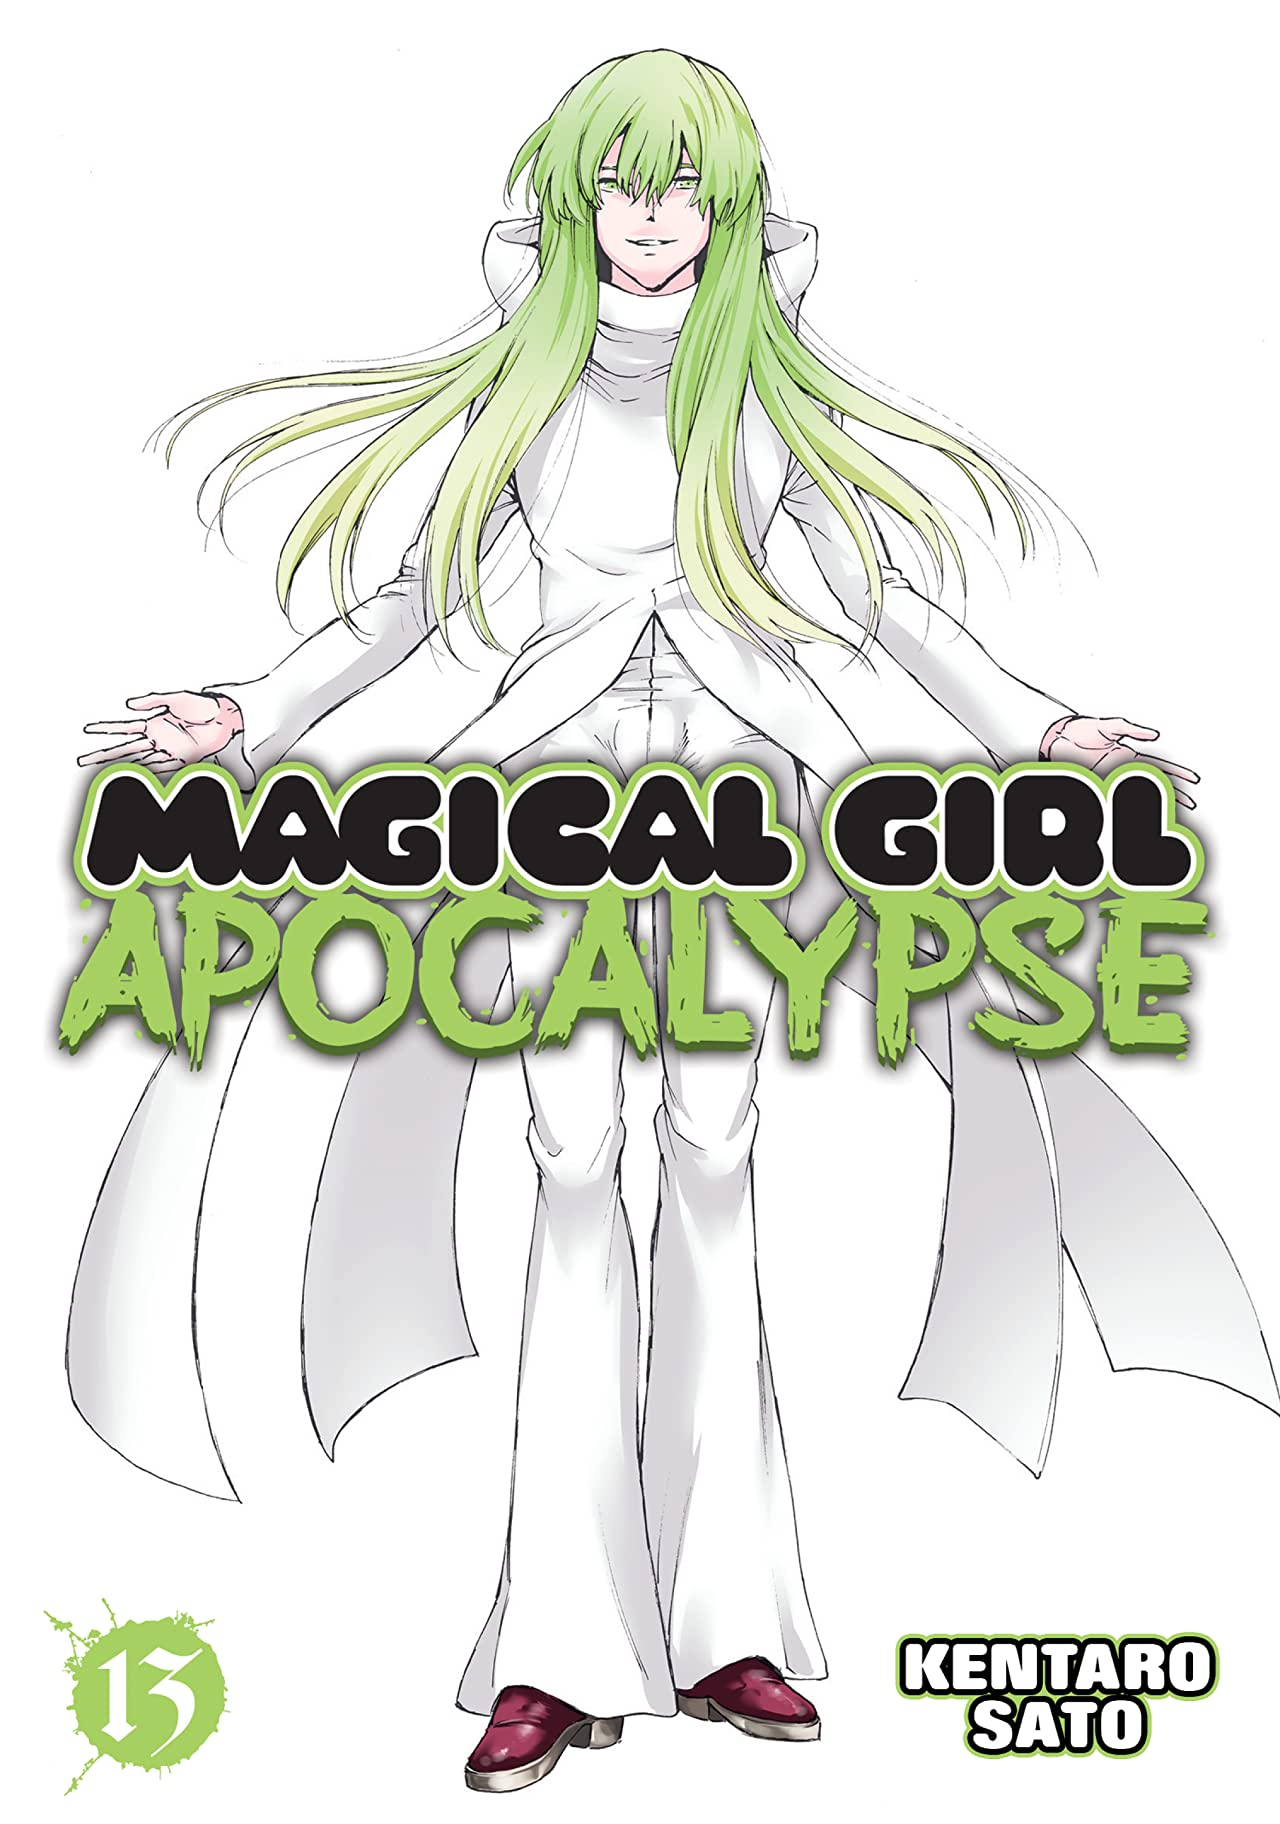 Magical Girl Apocalypse Vol. 13